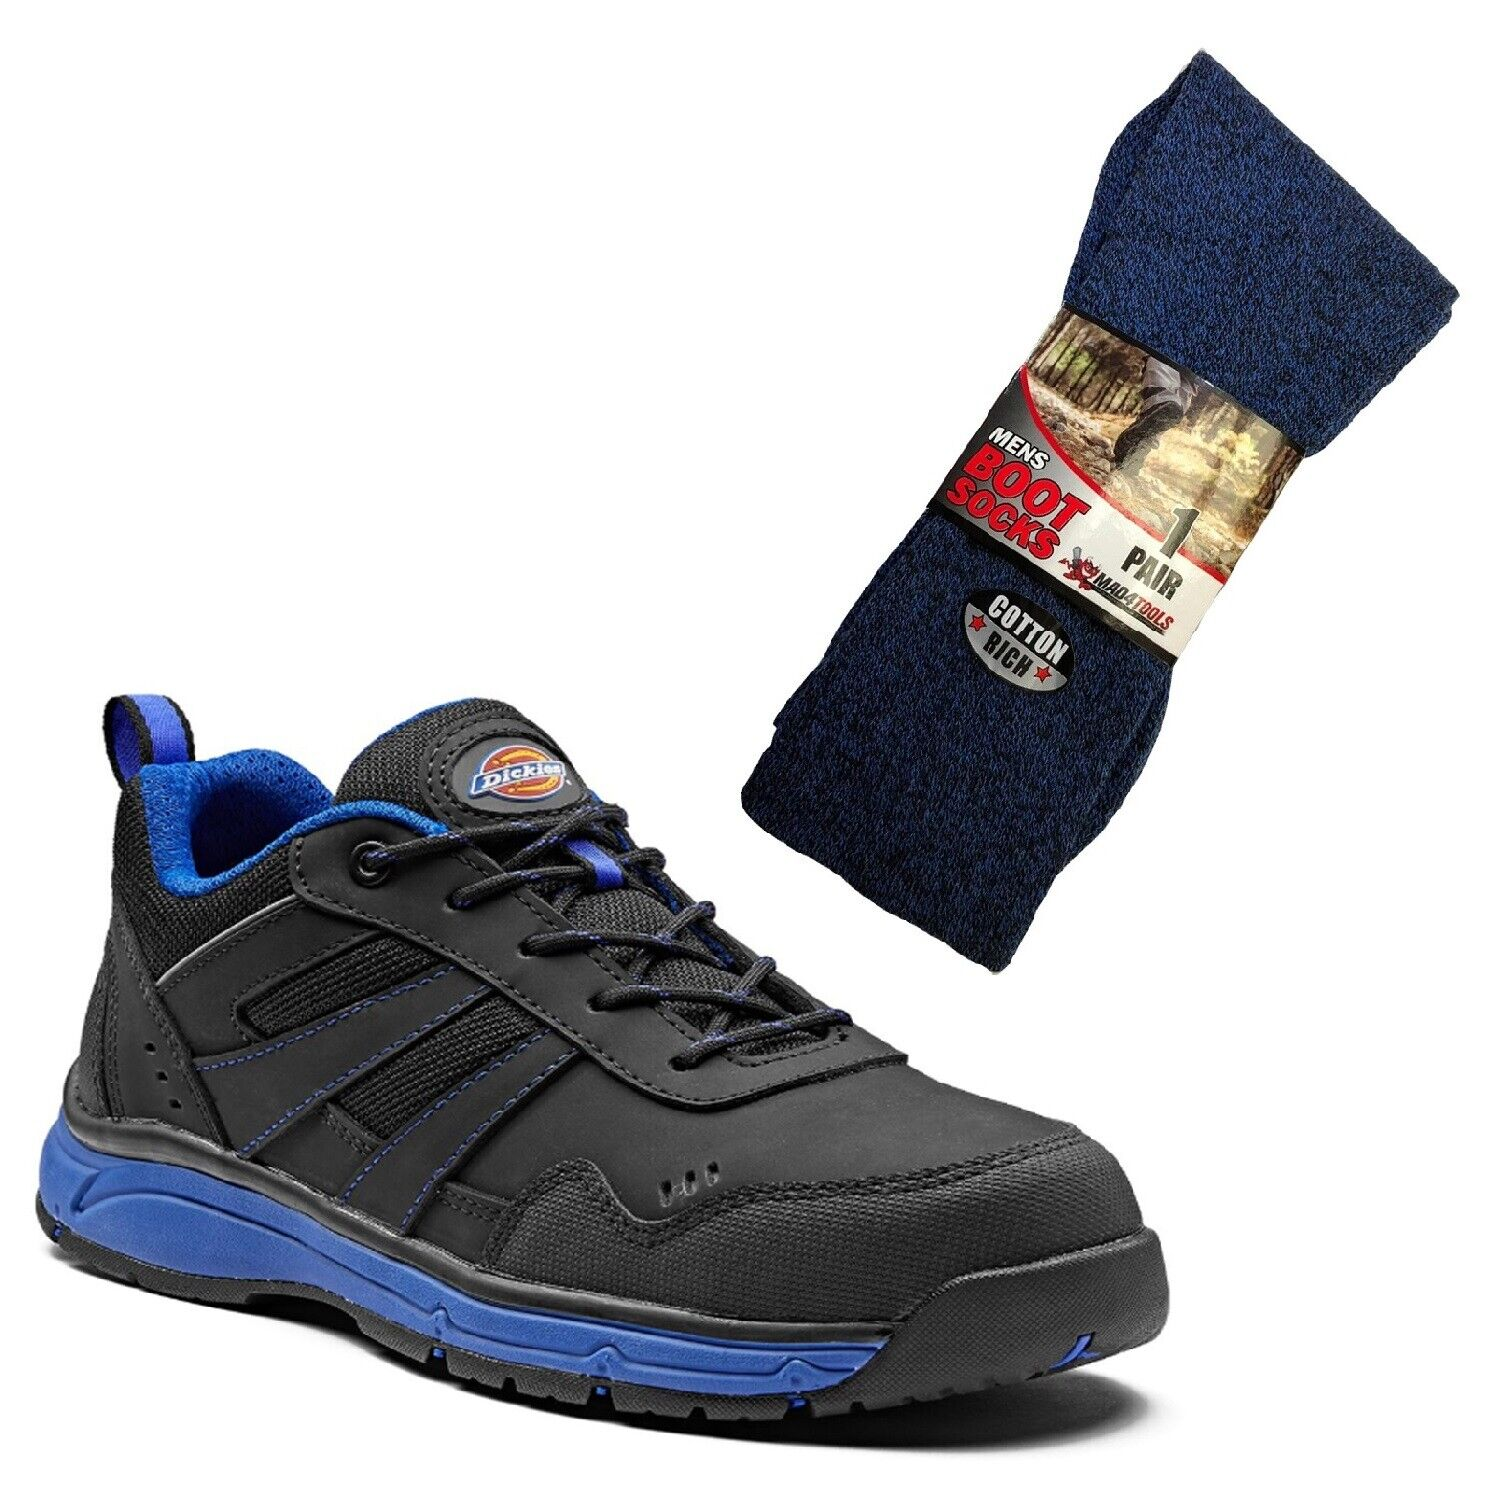 Dickies Emerson Trainer Scarpe Nero Safety & Royal blu & 1 paio di calze Stivale